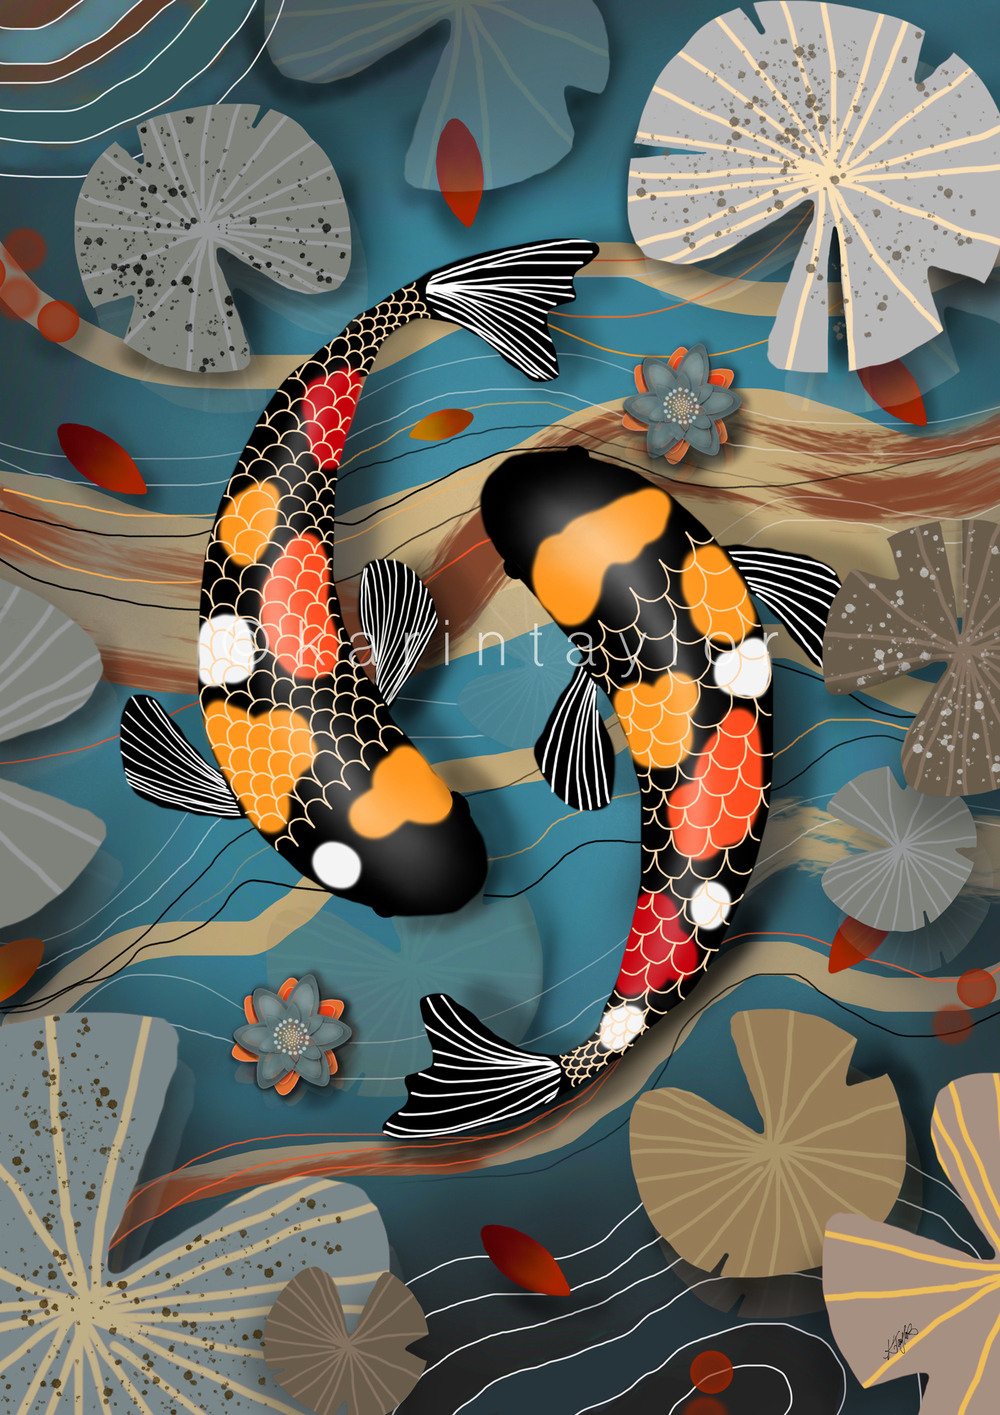 Koi Watergarden painting by Karin Taylor